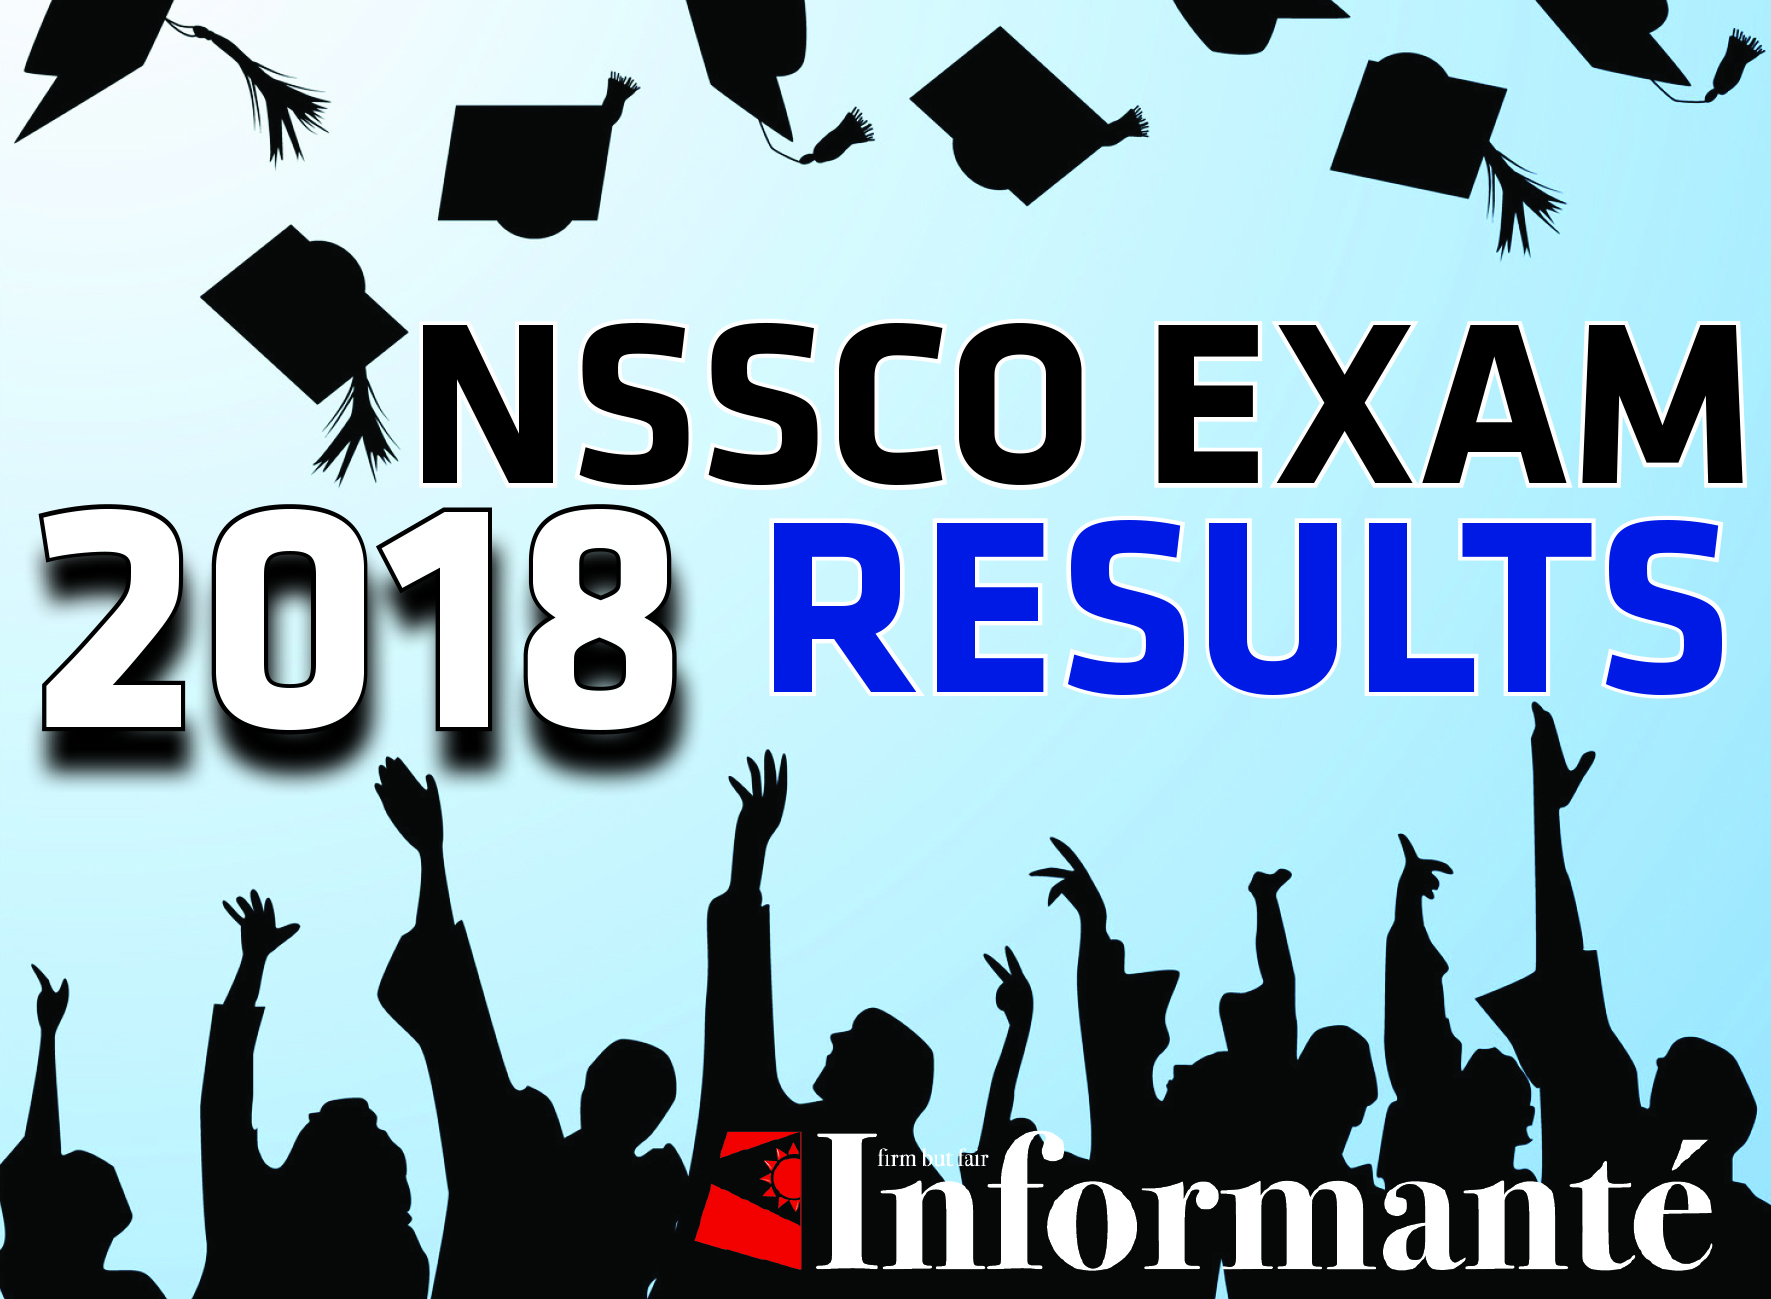 NSSCO Exam Results 2018